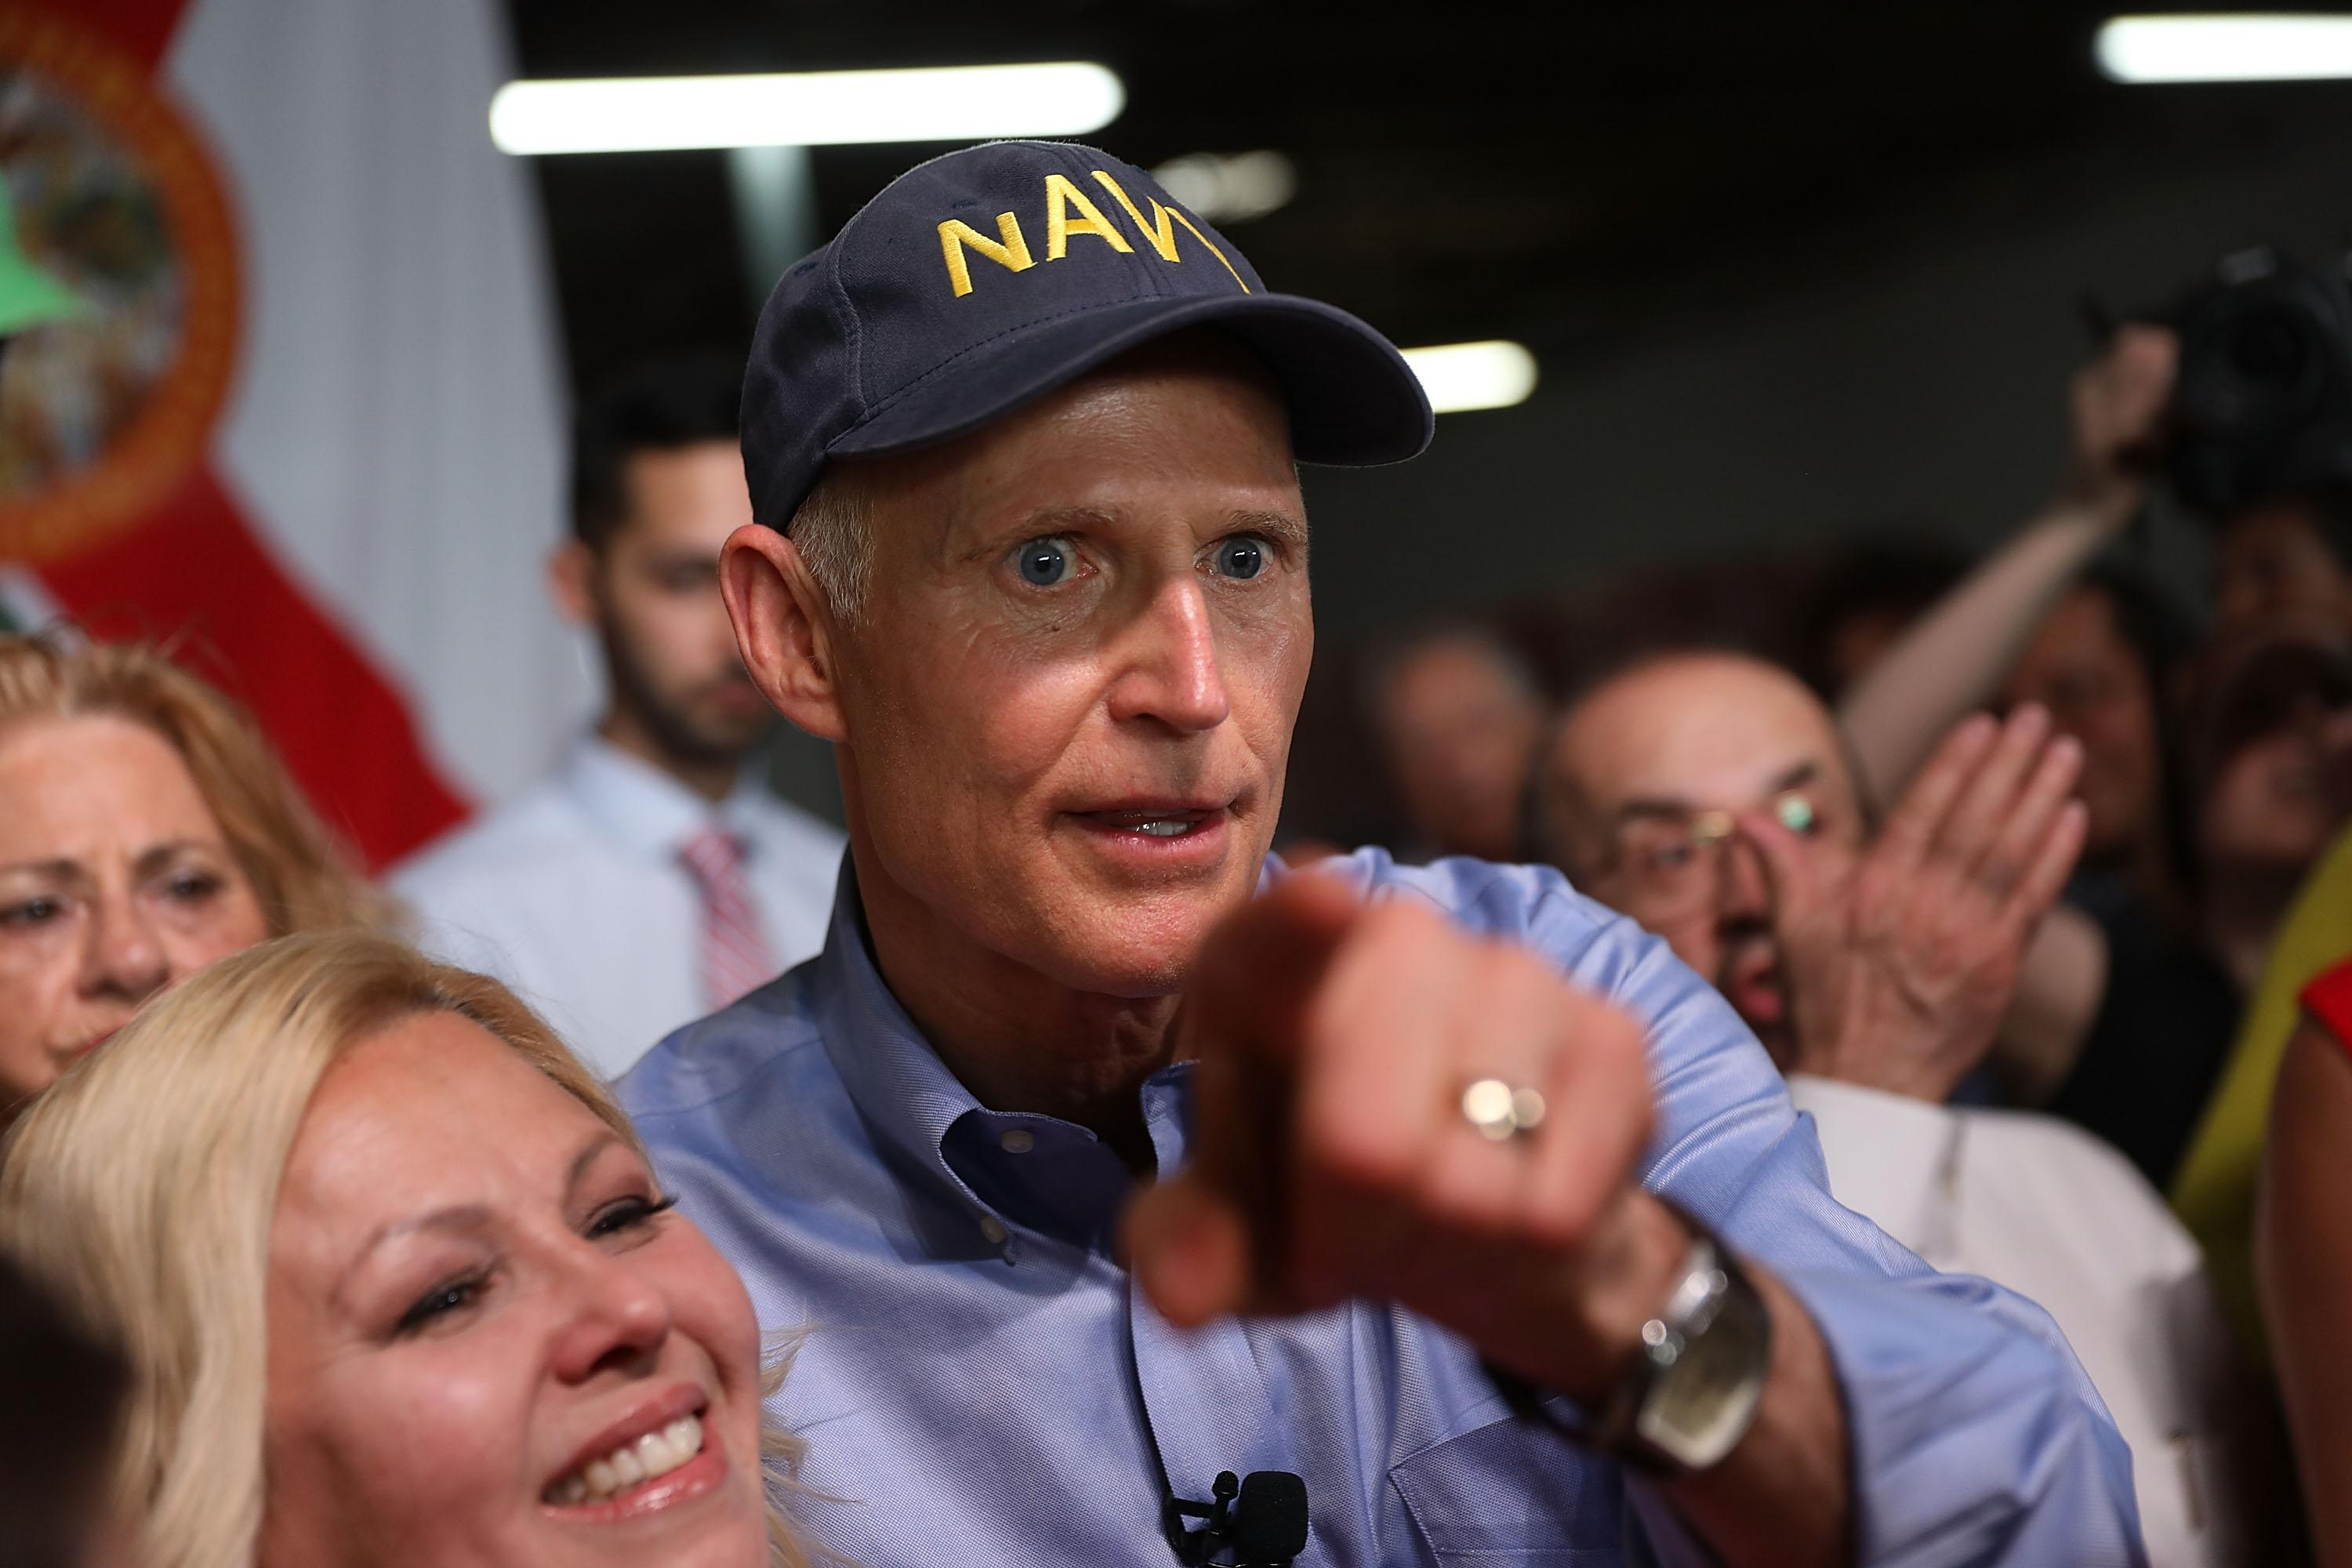 HIALEAH, FL - APRIL 10:  Florida Governor Rick Scott greets people as he holds a Senate campaign rally at the Interstate Beverage Corp. on April 10, 2018 in Hialeah, Florida. Scott is facing off against the incumbent Democrat Sen. Bill Nelson (D-FL) for the Florida seat.  (Photo by Joe Raedle/Getty Images)